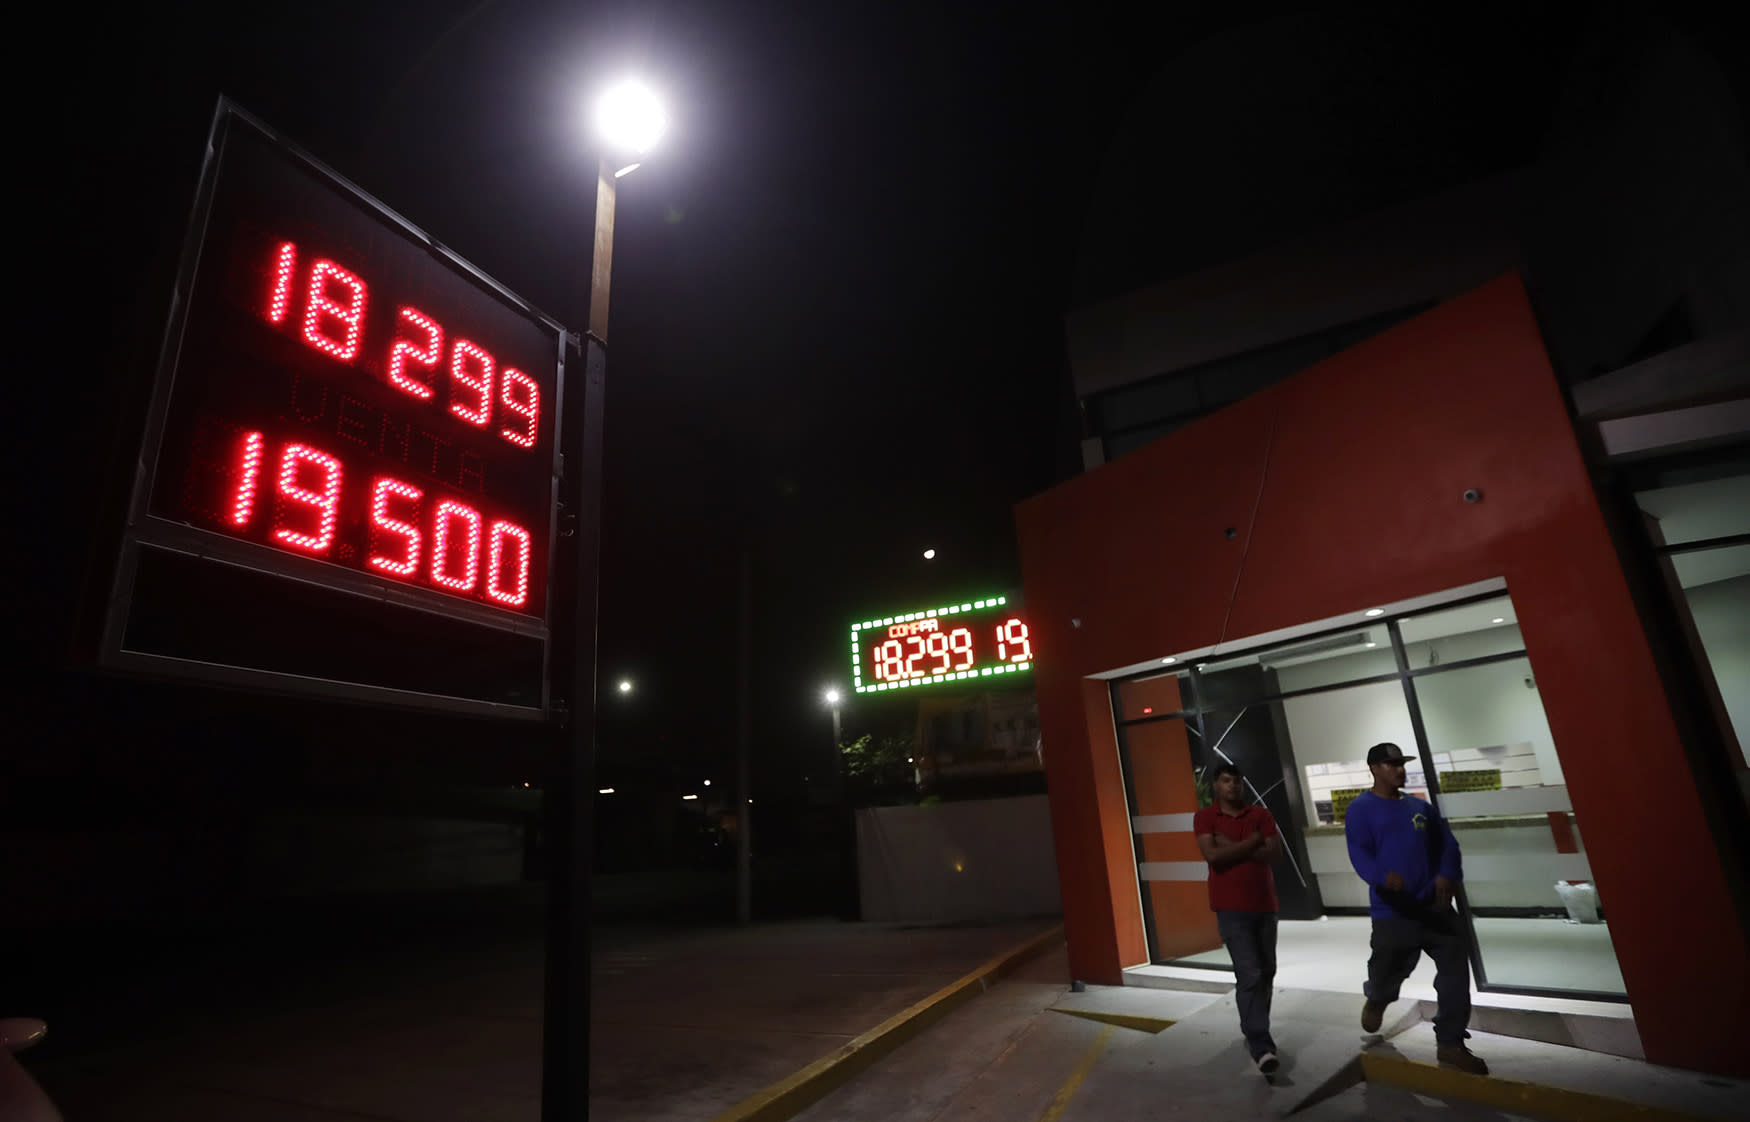 <p>Men leave a currency exchange business displaying rates of the Mexican peso Tuesday, Nov. 8, 2016, in Tijuana, Mexico. The rising prospect of a Trump presidency jolted markets around the world Wednesday, sending Dow futures and Asian stock prices sharply lower as investors panicked over uncertainties on trade, immigration and geopolitical tensions. The Mexican peso likewise tumbled and investors looking for safe assets bid up the price of gold. (AP Photo/Gregory Bull) </p>